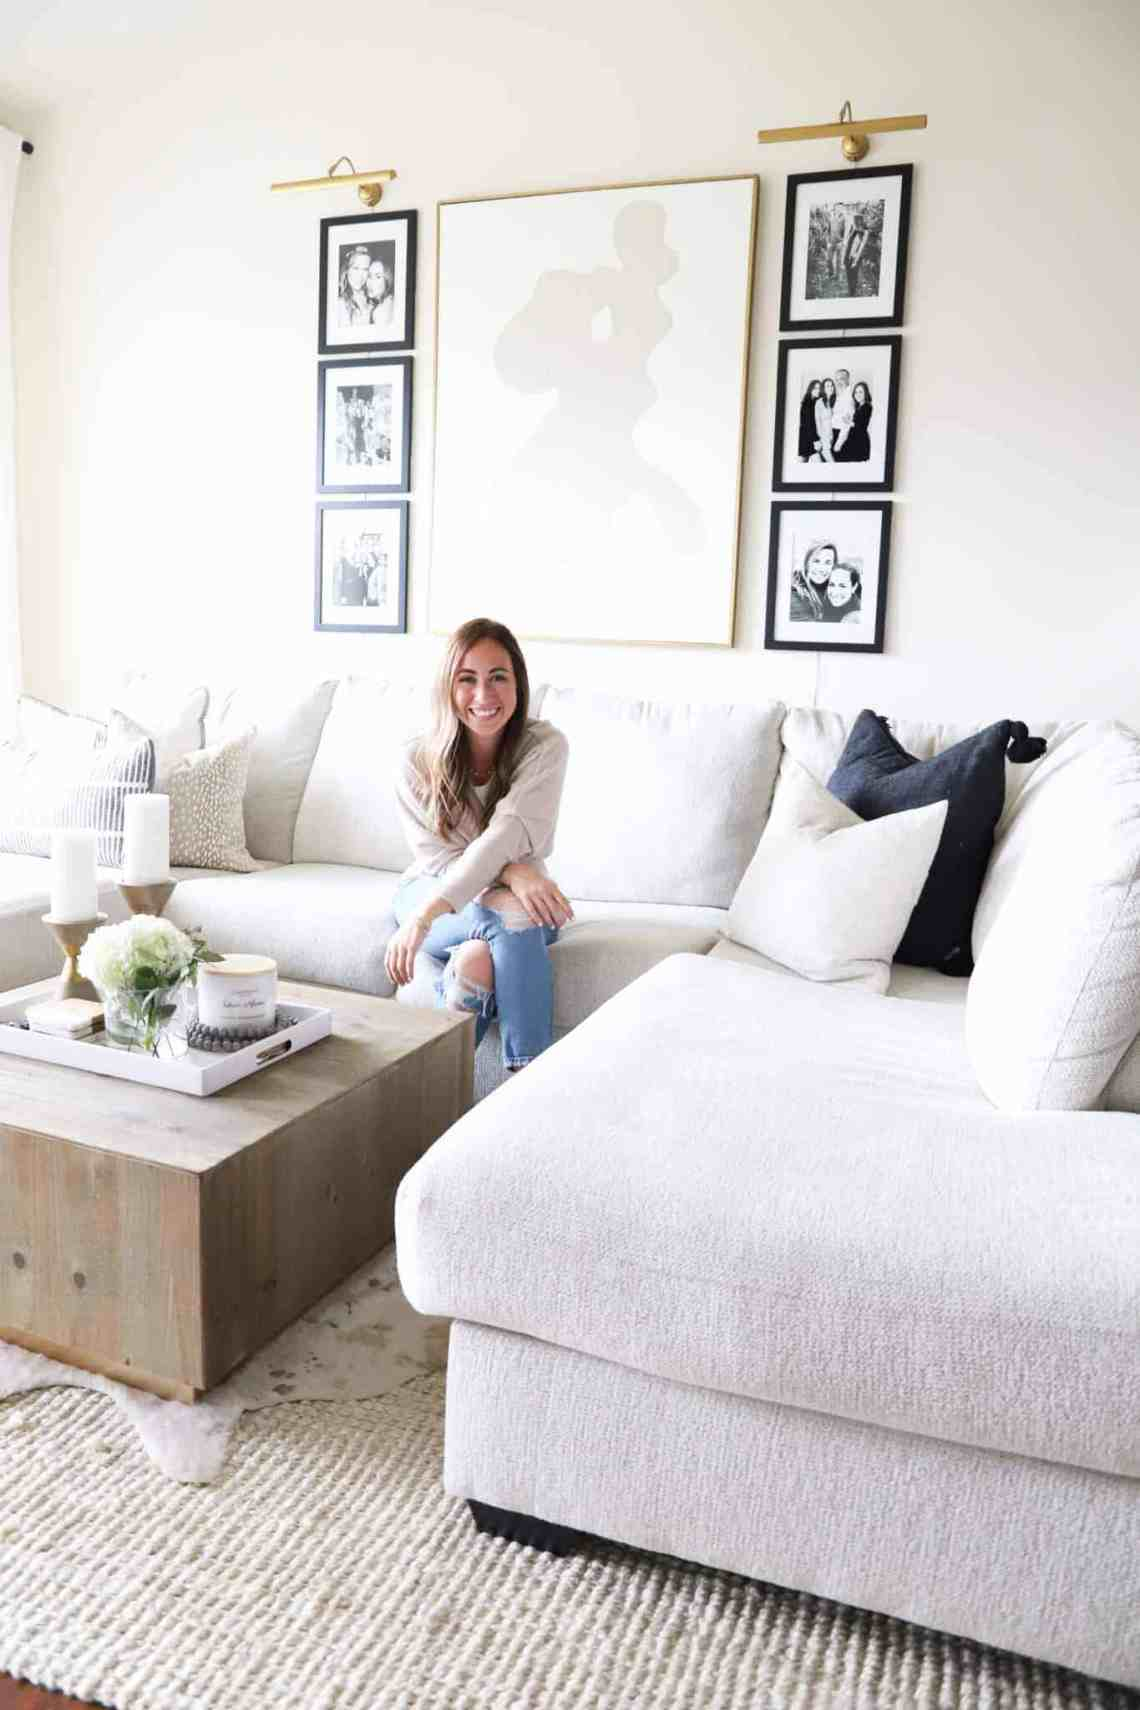 12 Genius Apartment Decorating Ideas On A Budget You Can Easily Recreate By Sophia Lee